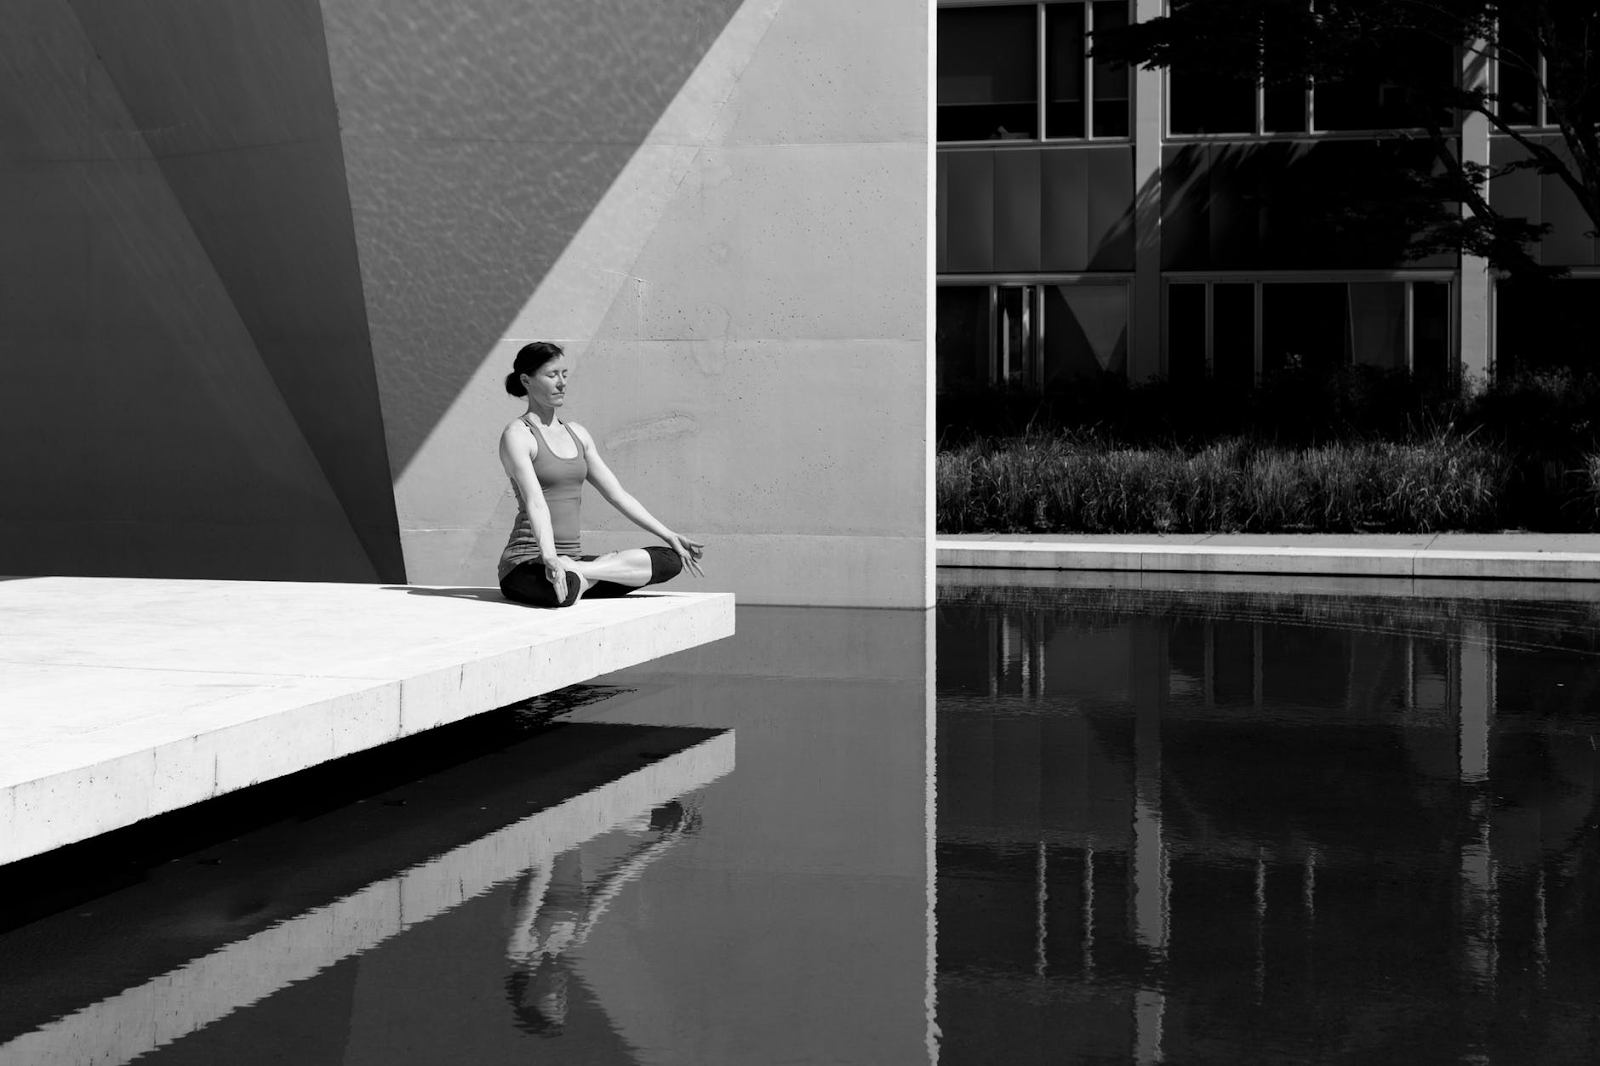 girl outside a building meditating